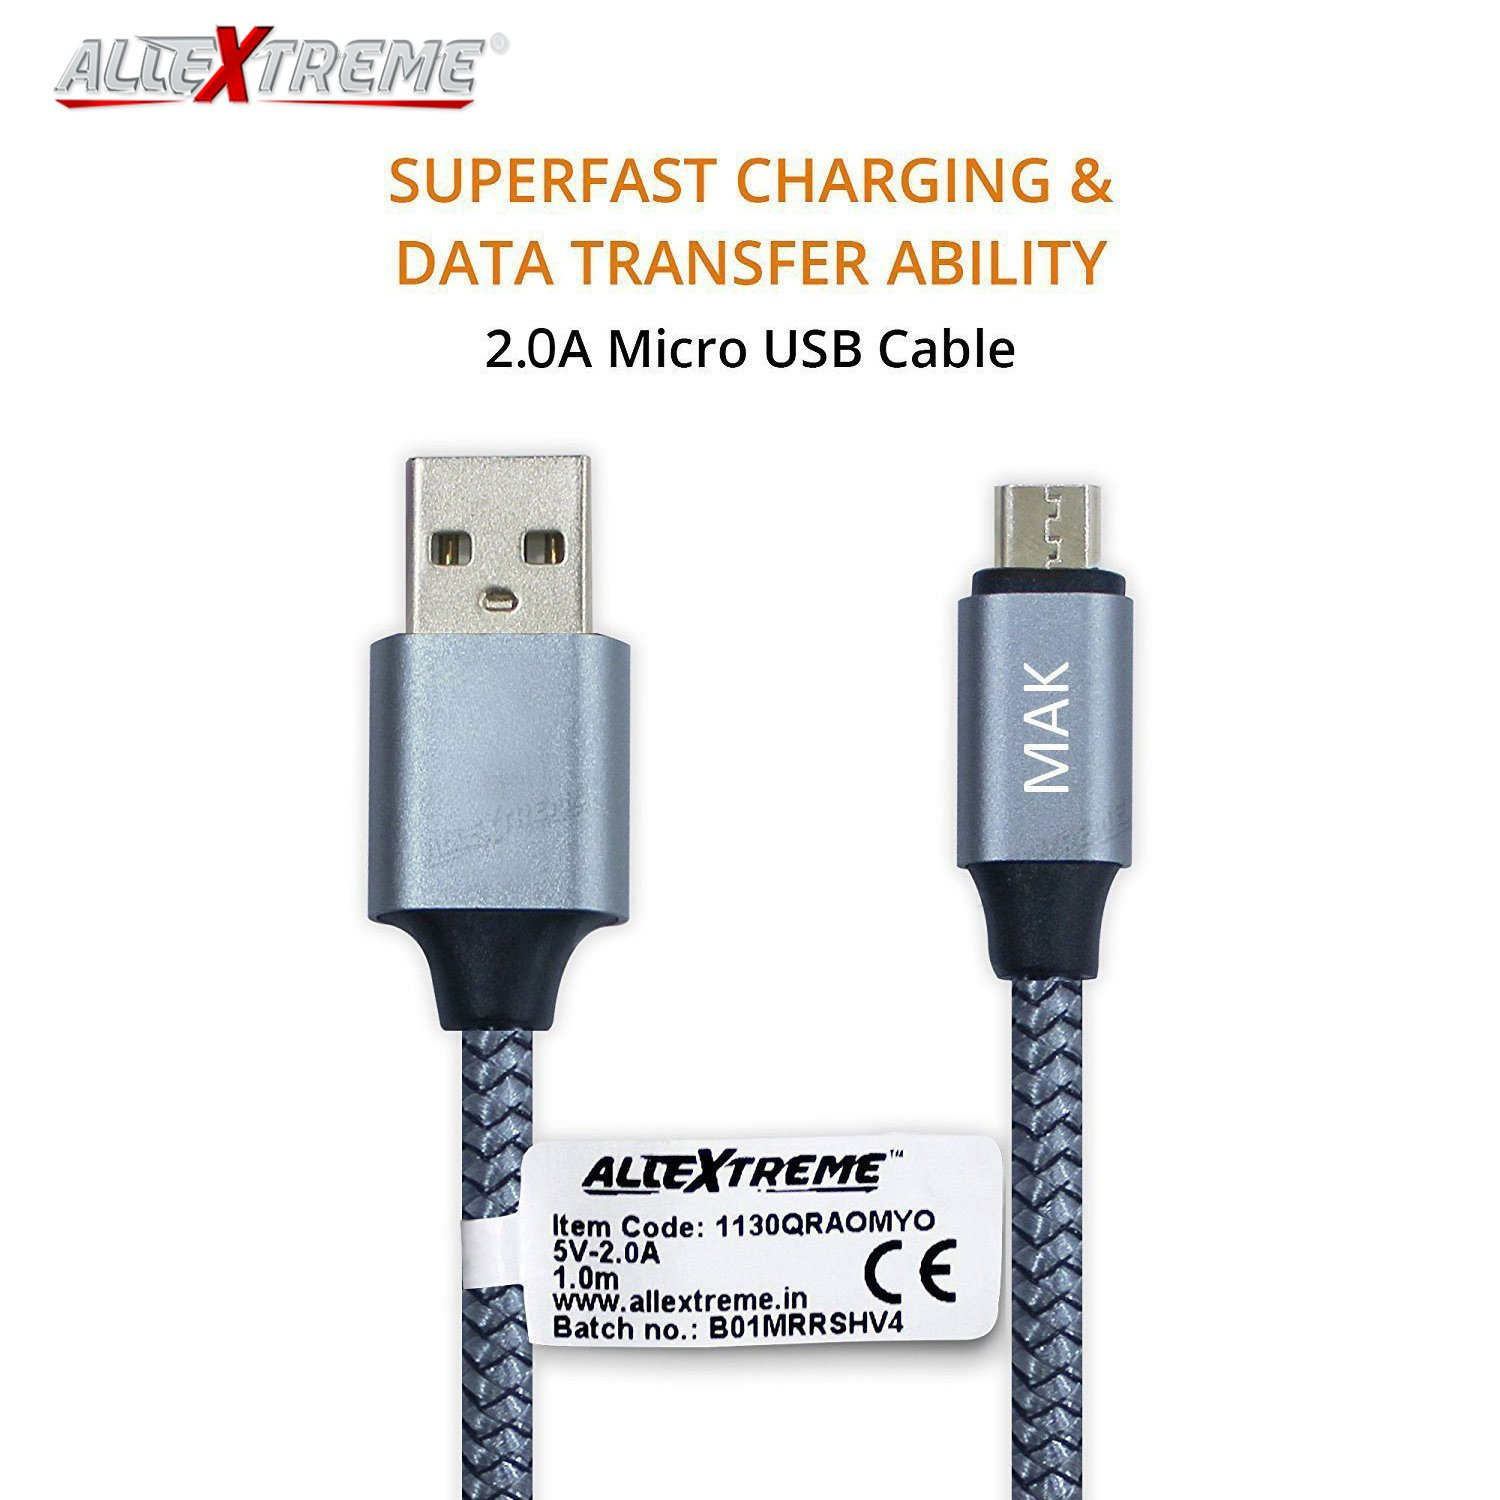 Usb cable color coded wires dolgular fine usb cable color coded wires images electrical circuit asfbconference2016 Image collections